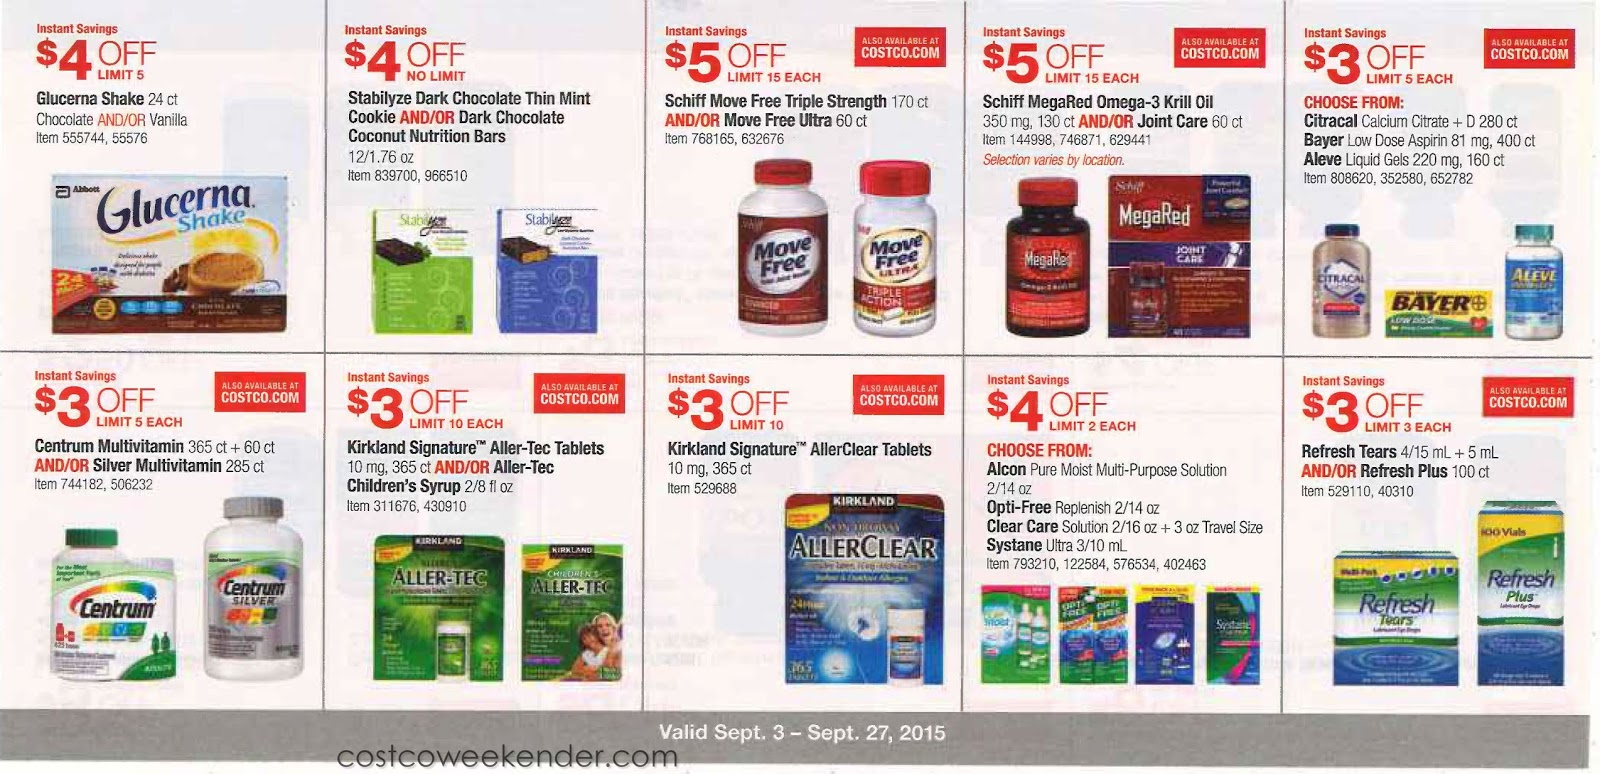 Current Costco Coupon Book September 2015 Costco Weekender